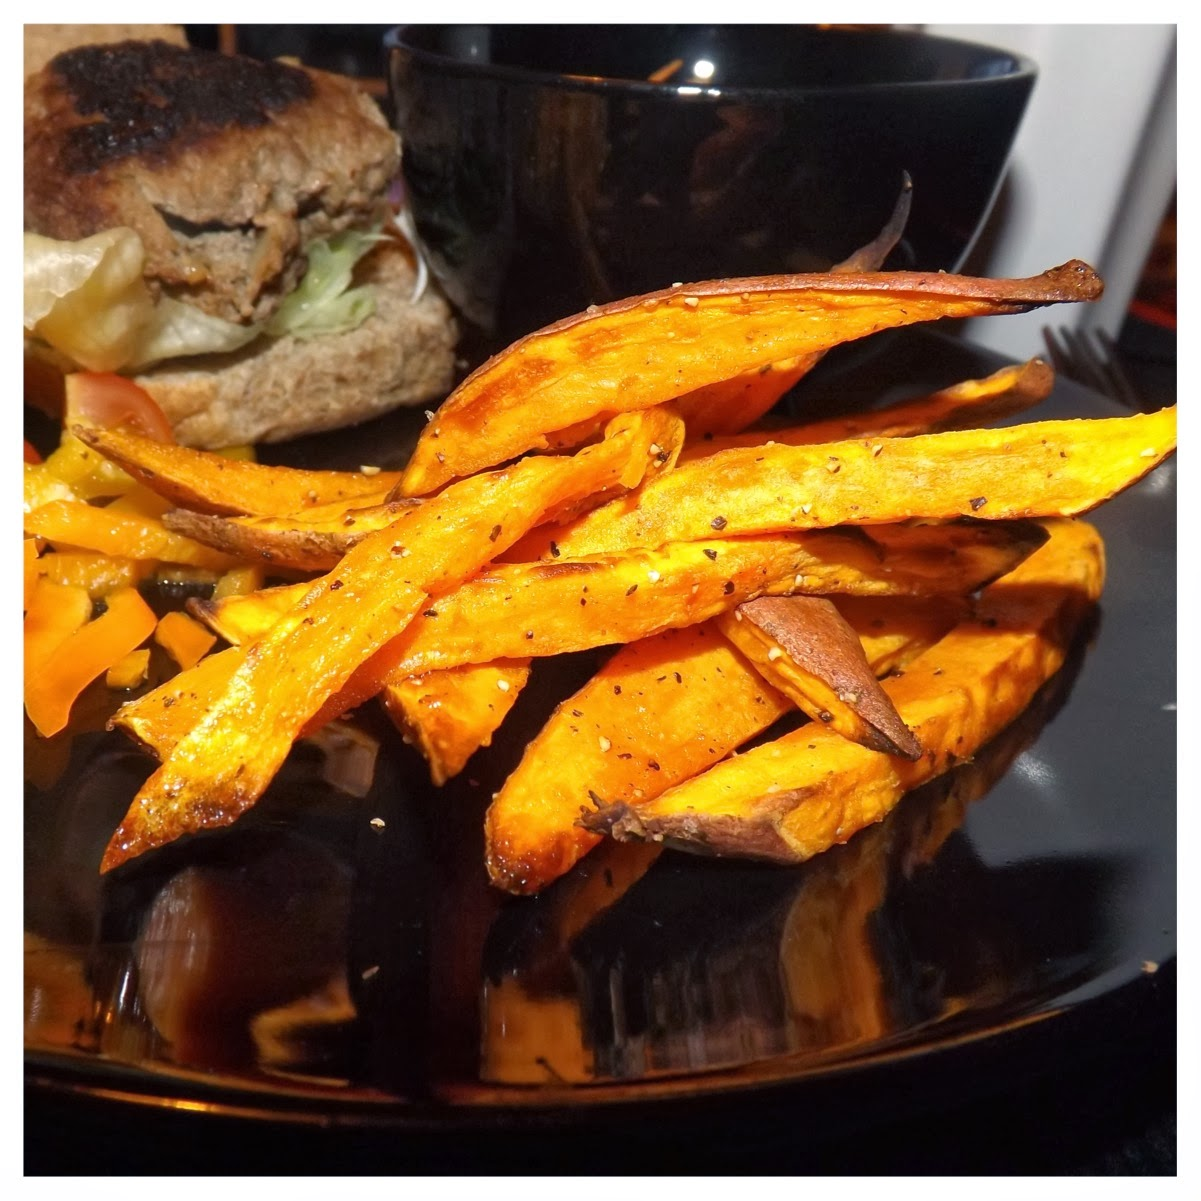 Slimming World sweet potato fries